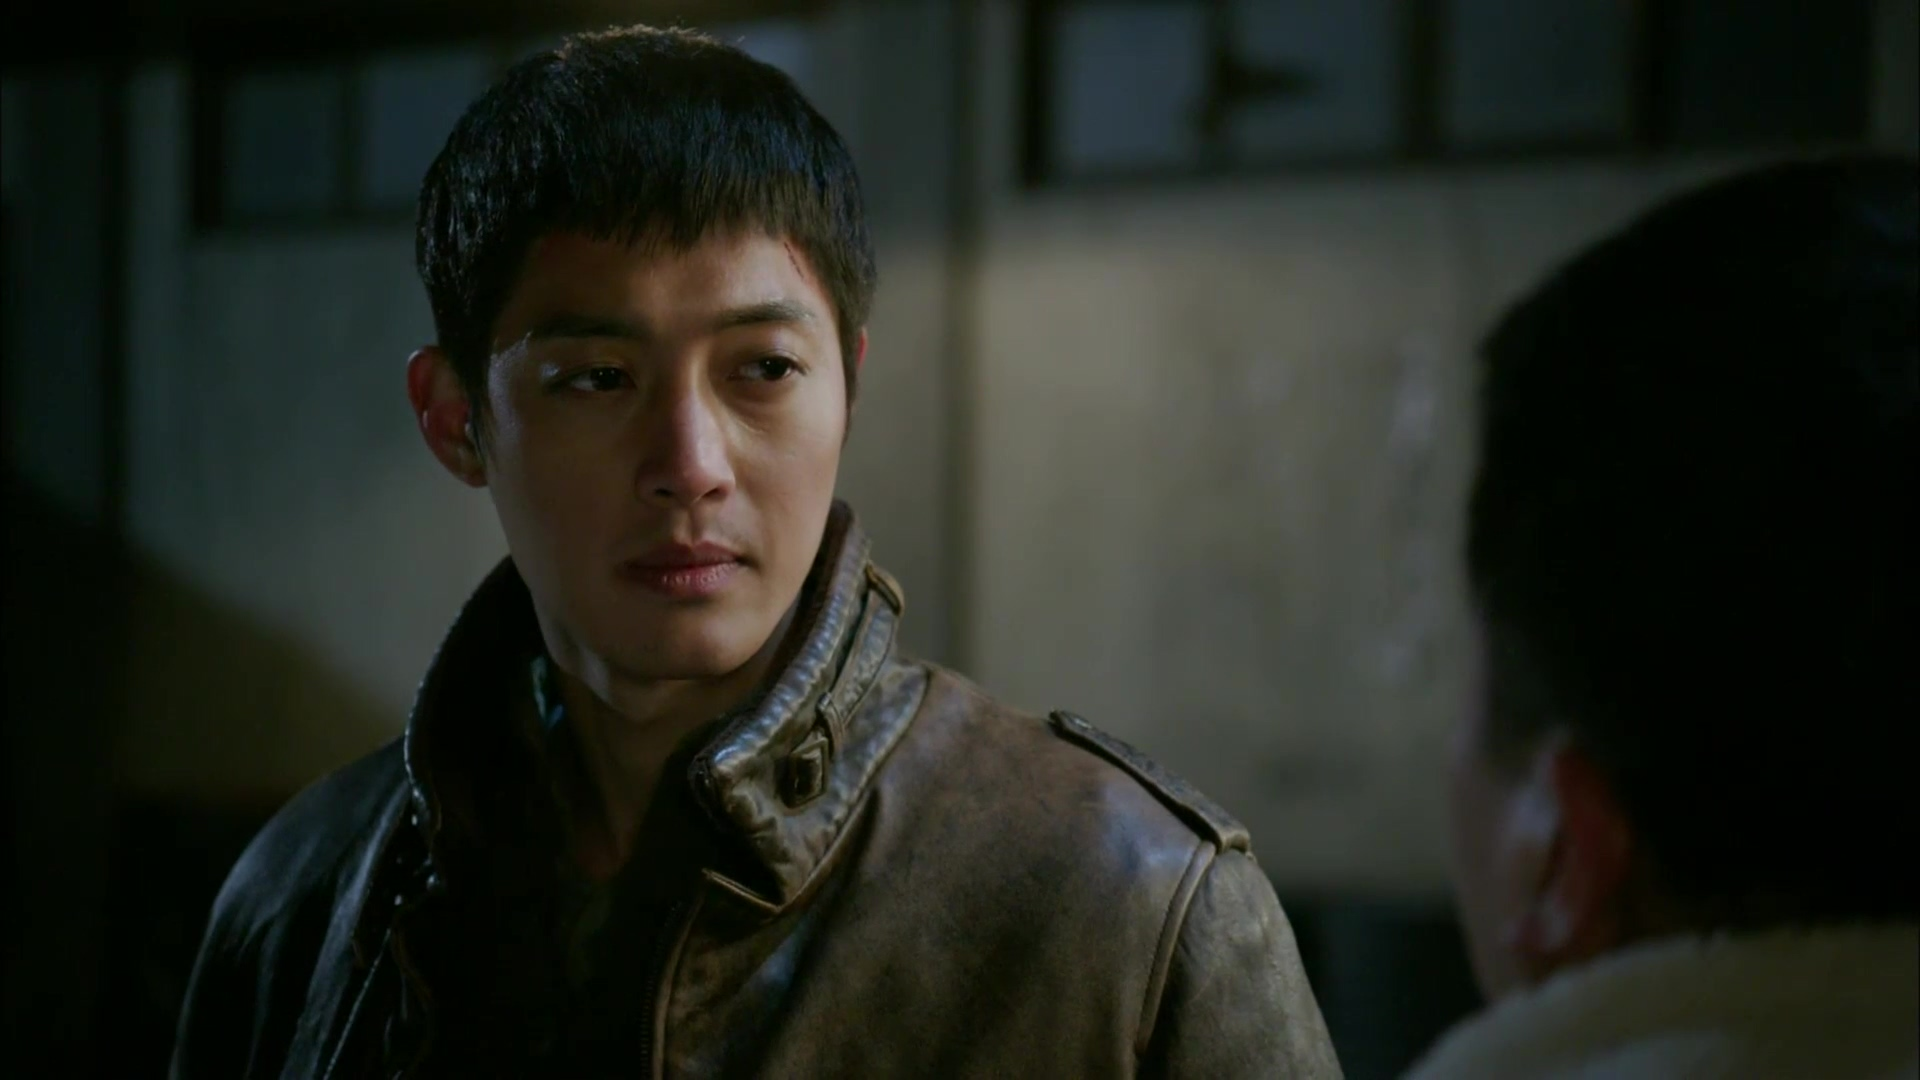 Inspiring Generation Episode 7